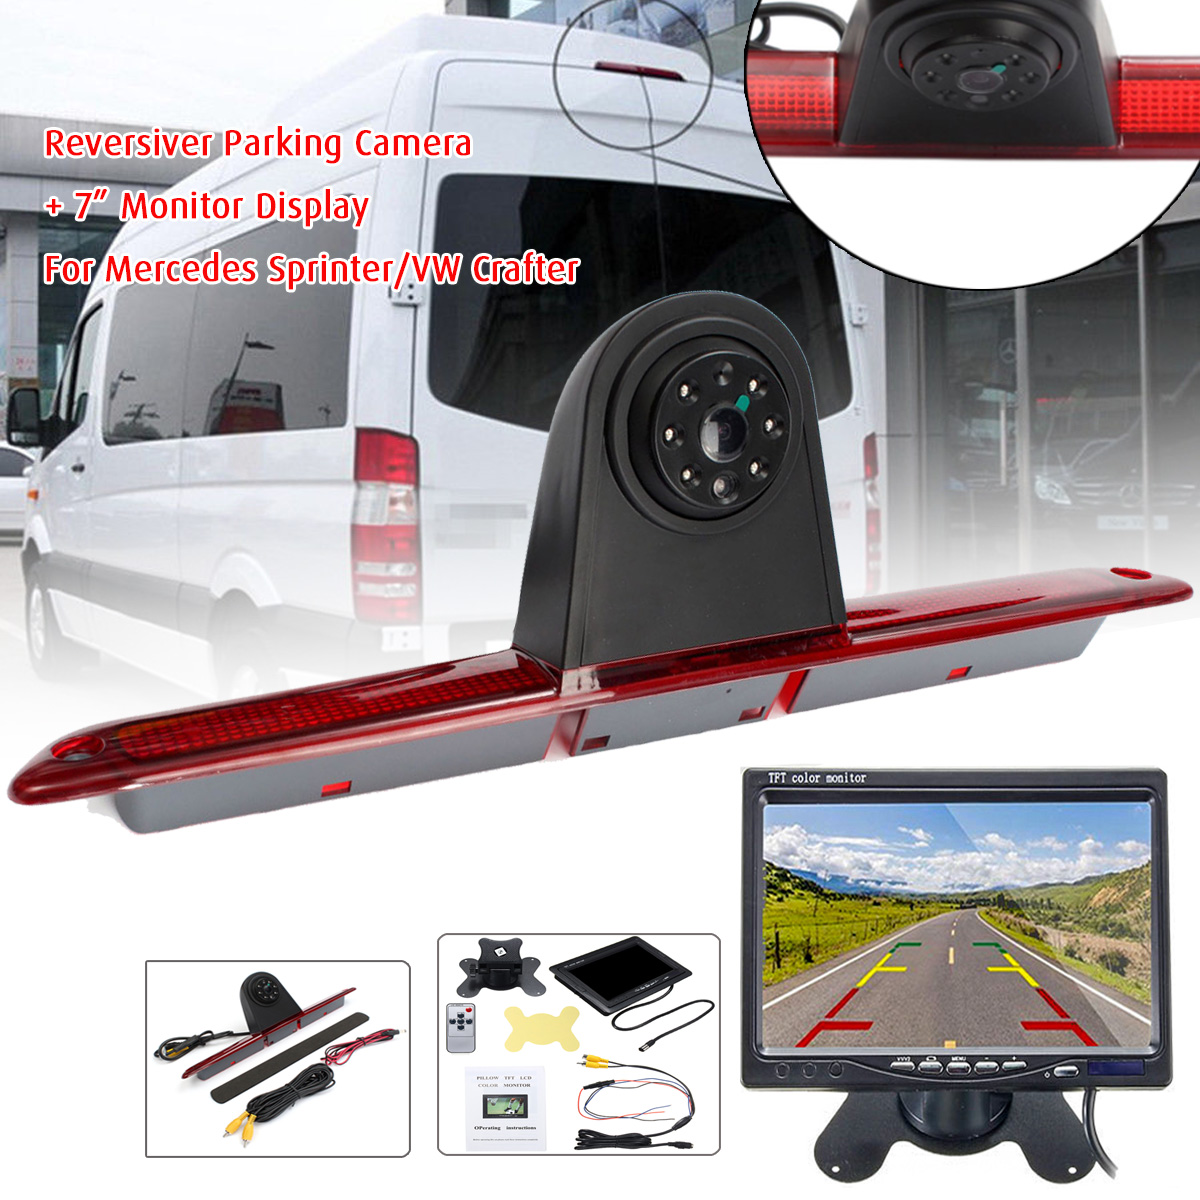 Car CCD Reversing Rear View Camera IR LED Brake Light Parking Night Vision Backup for Mercedes benz Sprinter VW Crafter